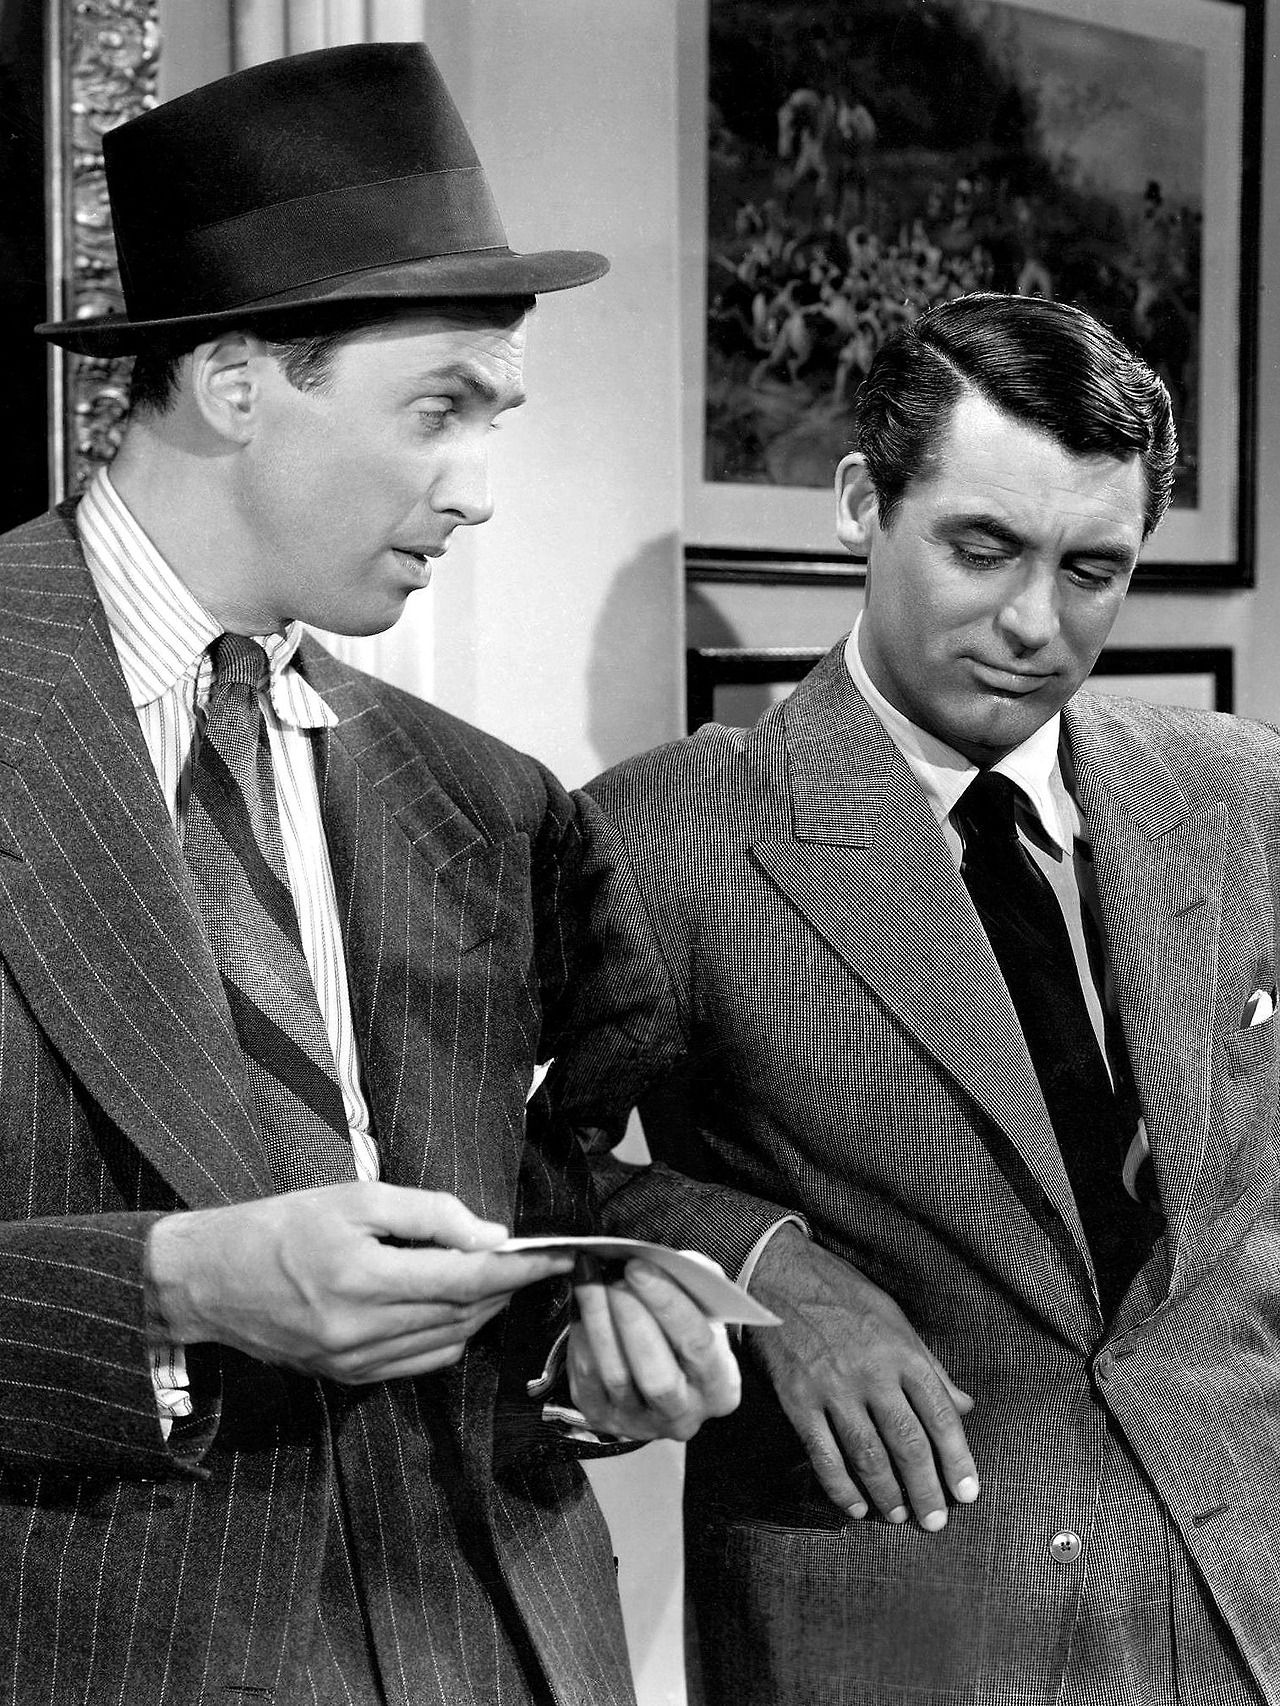 James Stewart ✮ and Cary Grant ✮ in The Philadelphia Story, (1940)